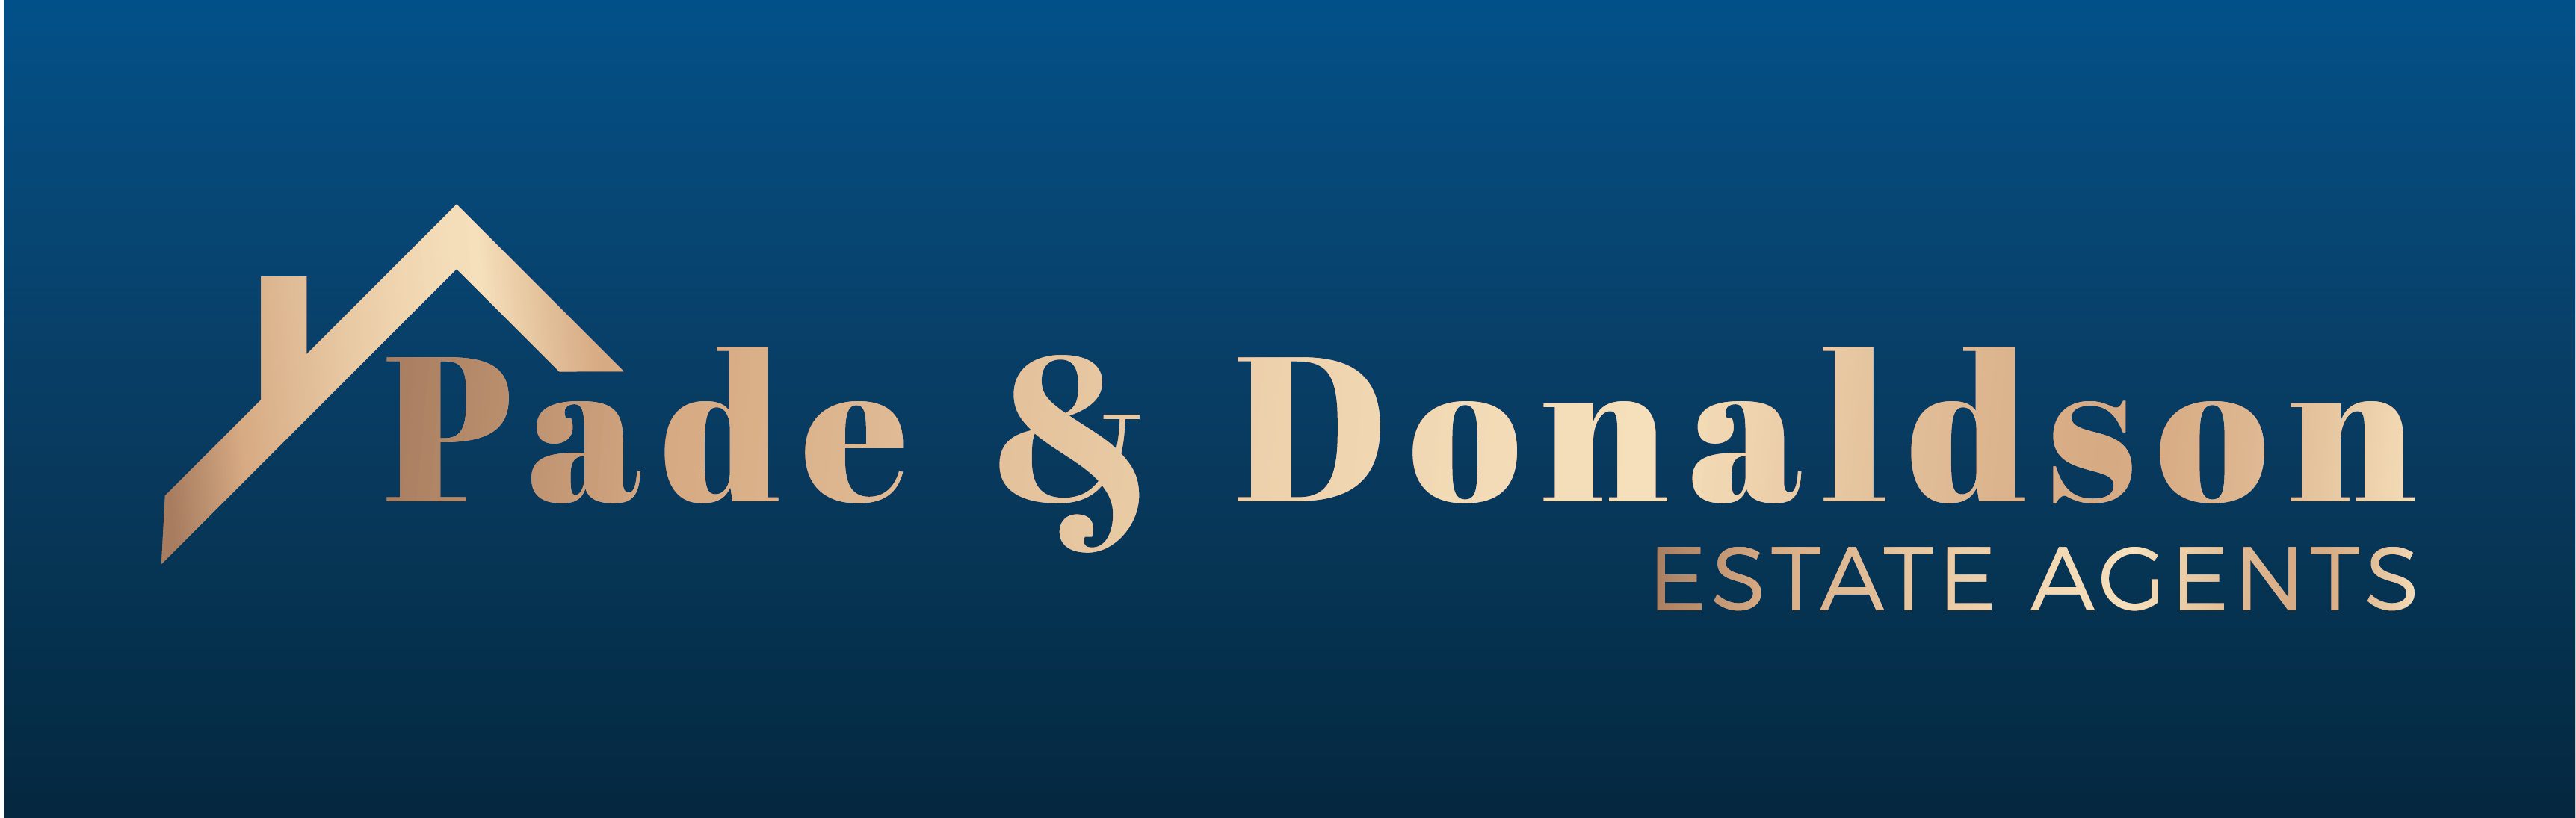 Pade & Donaldson Estate Agents -